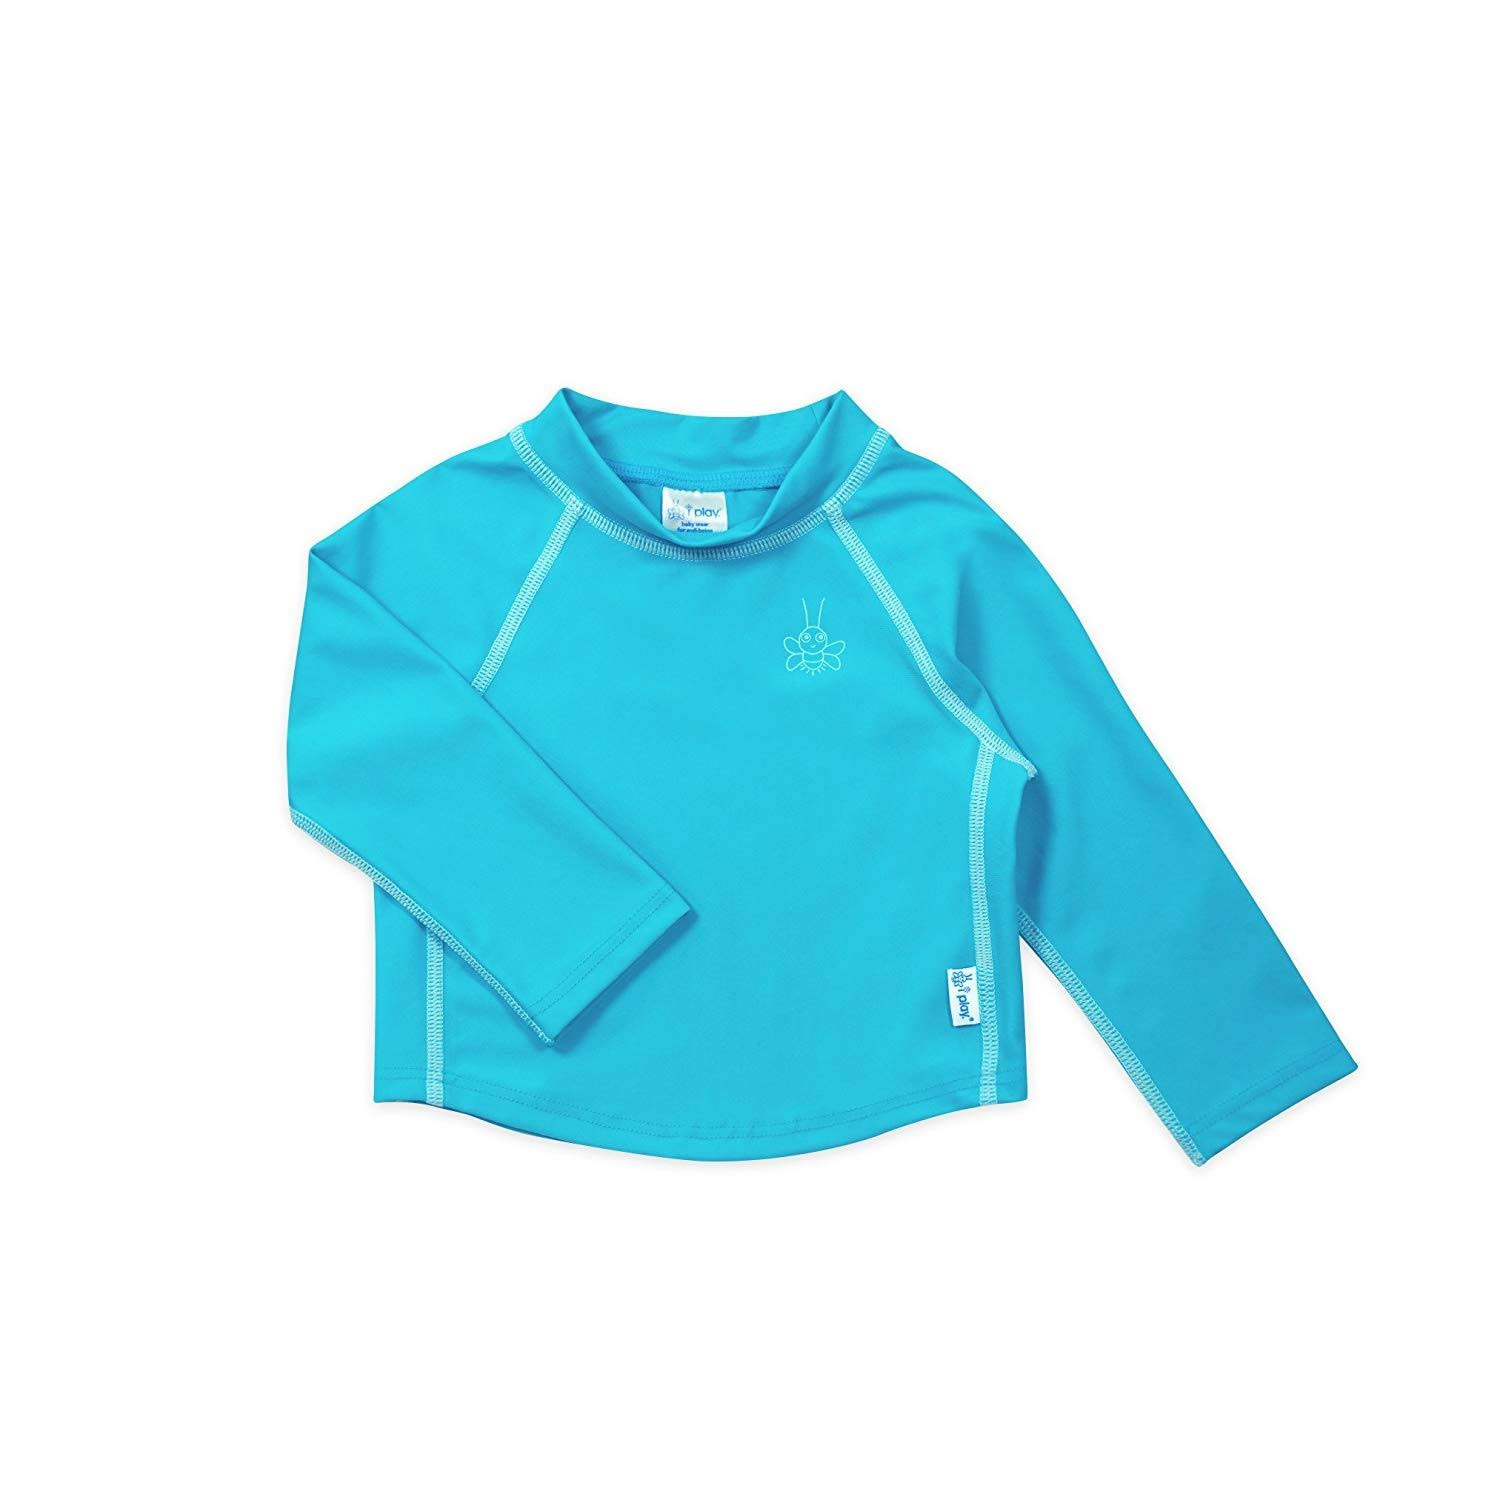 I Play. Aqua Long Sleeve Rashguard Shirt